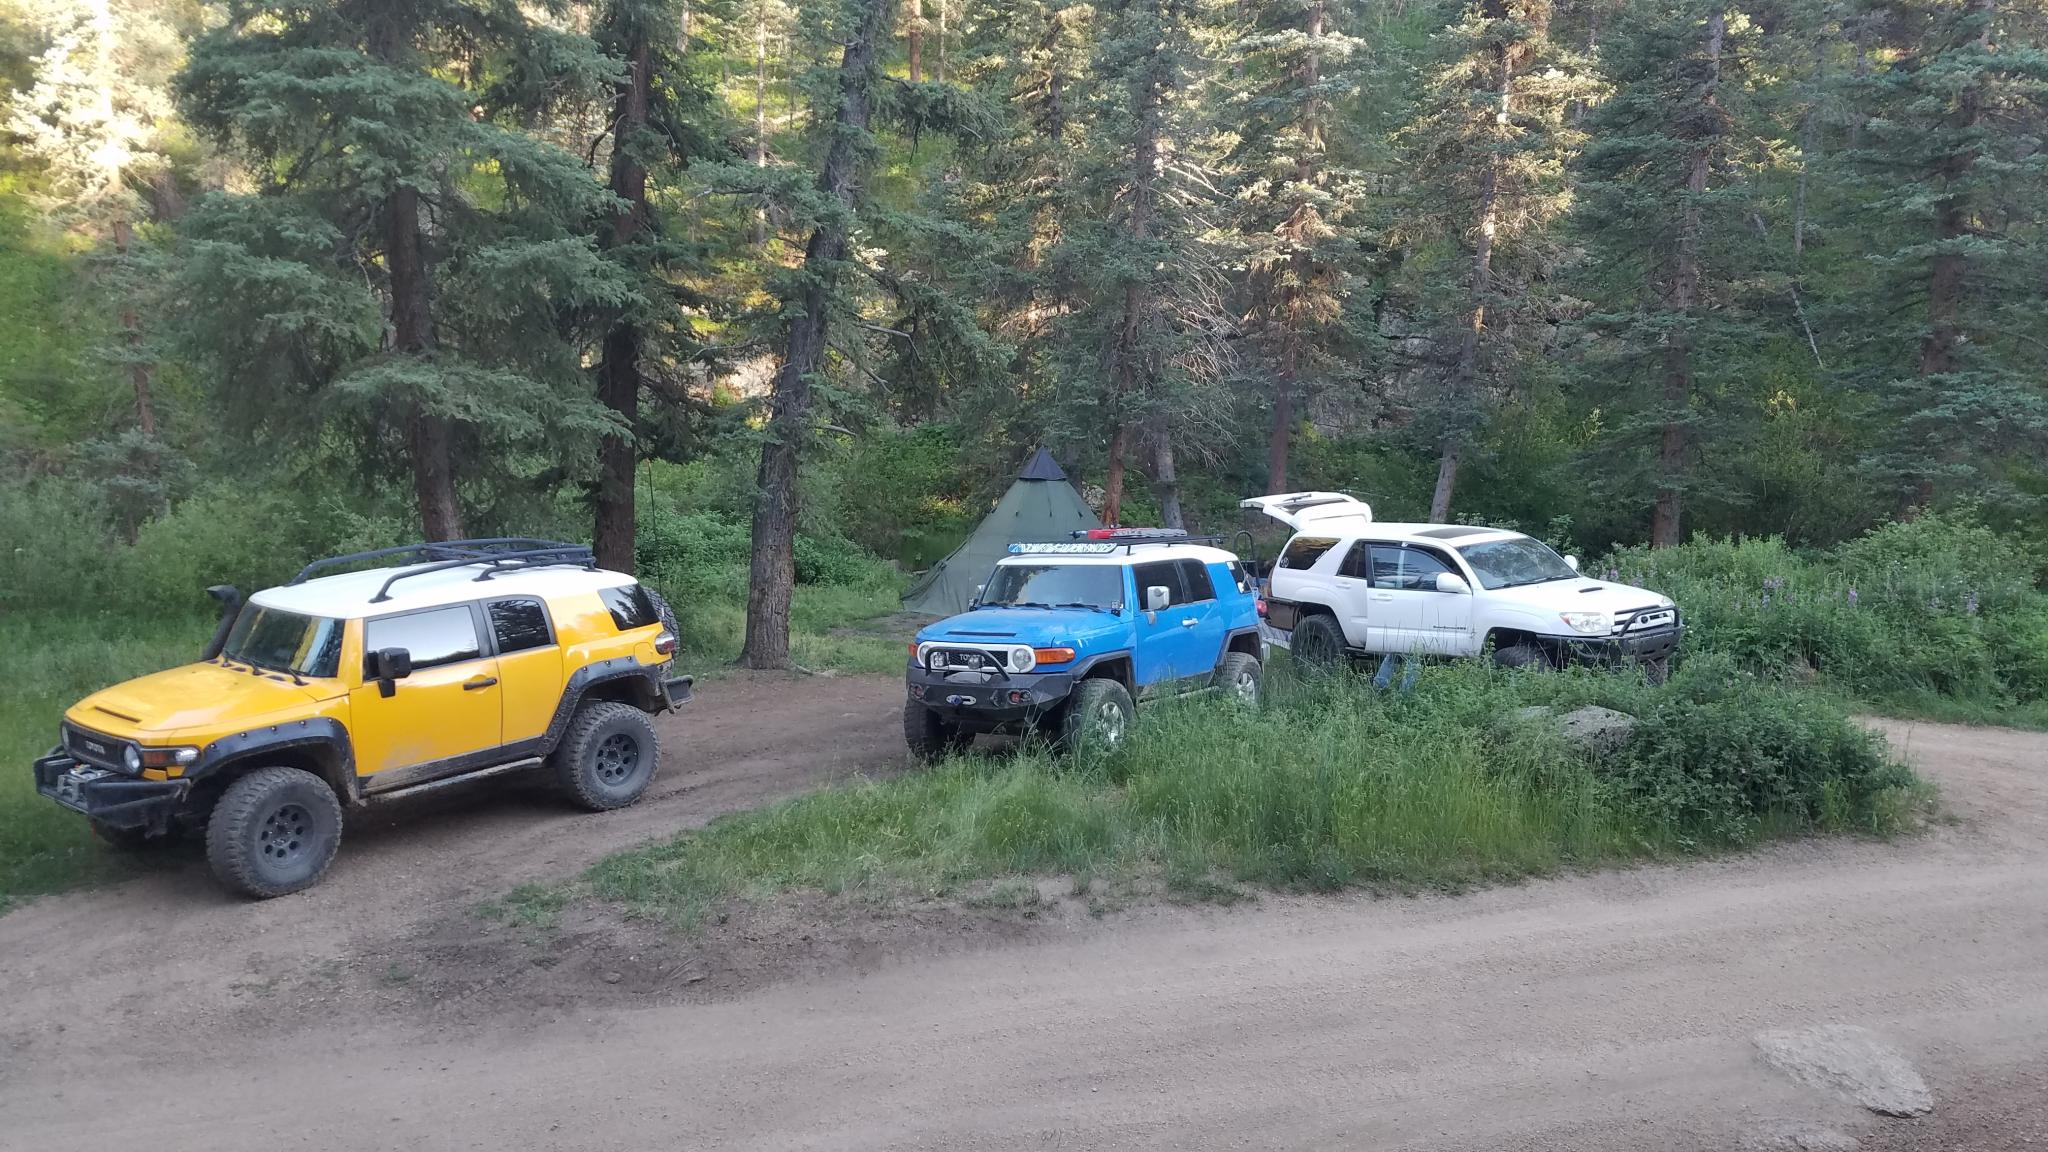 Let see your camping pics with the FJ..-20190718_191832.jpg